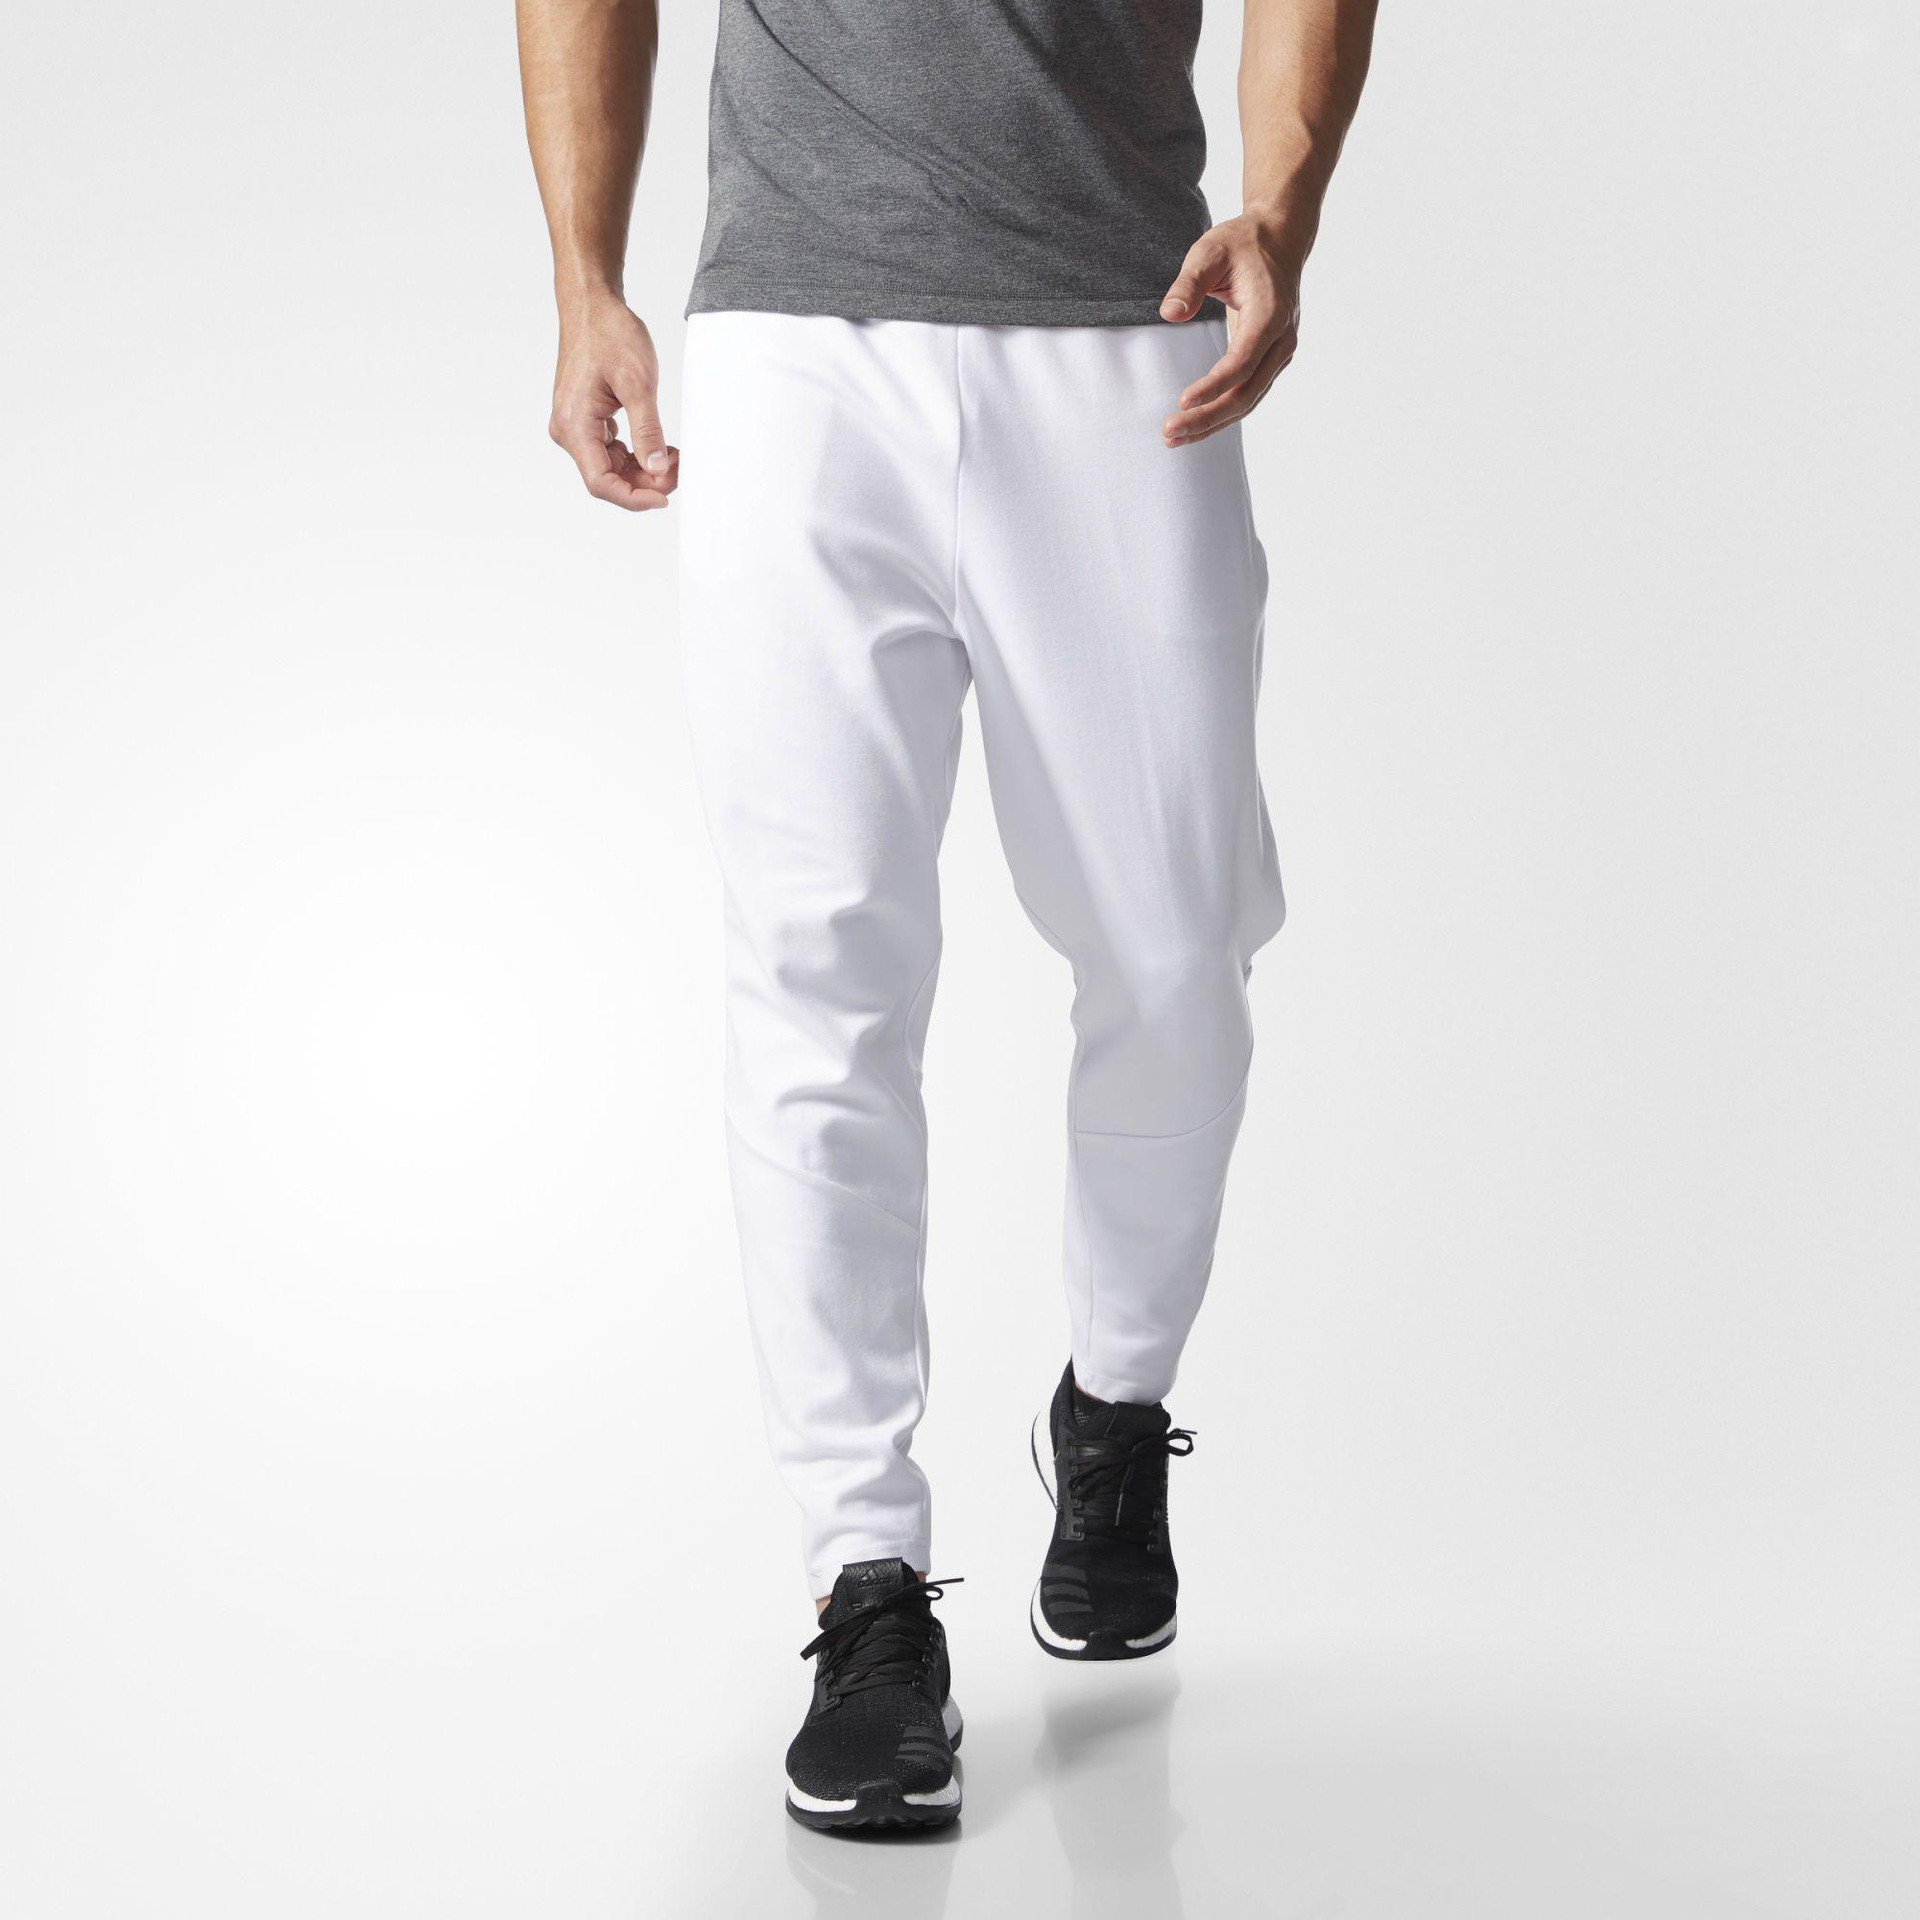 White Pants Men Streetwear Sweatpants Fashion Fitness Trousers Regular Spring Autumn Sport Training Pants Casual Straight Pants